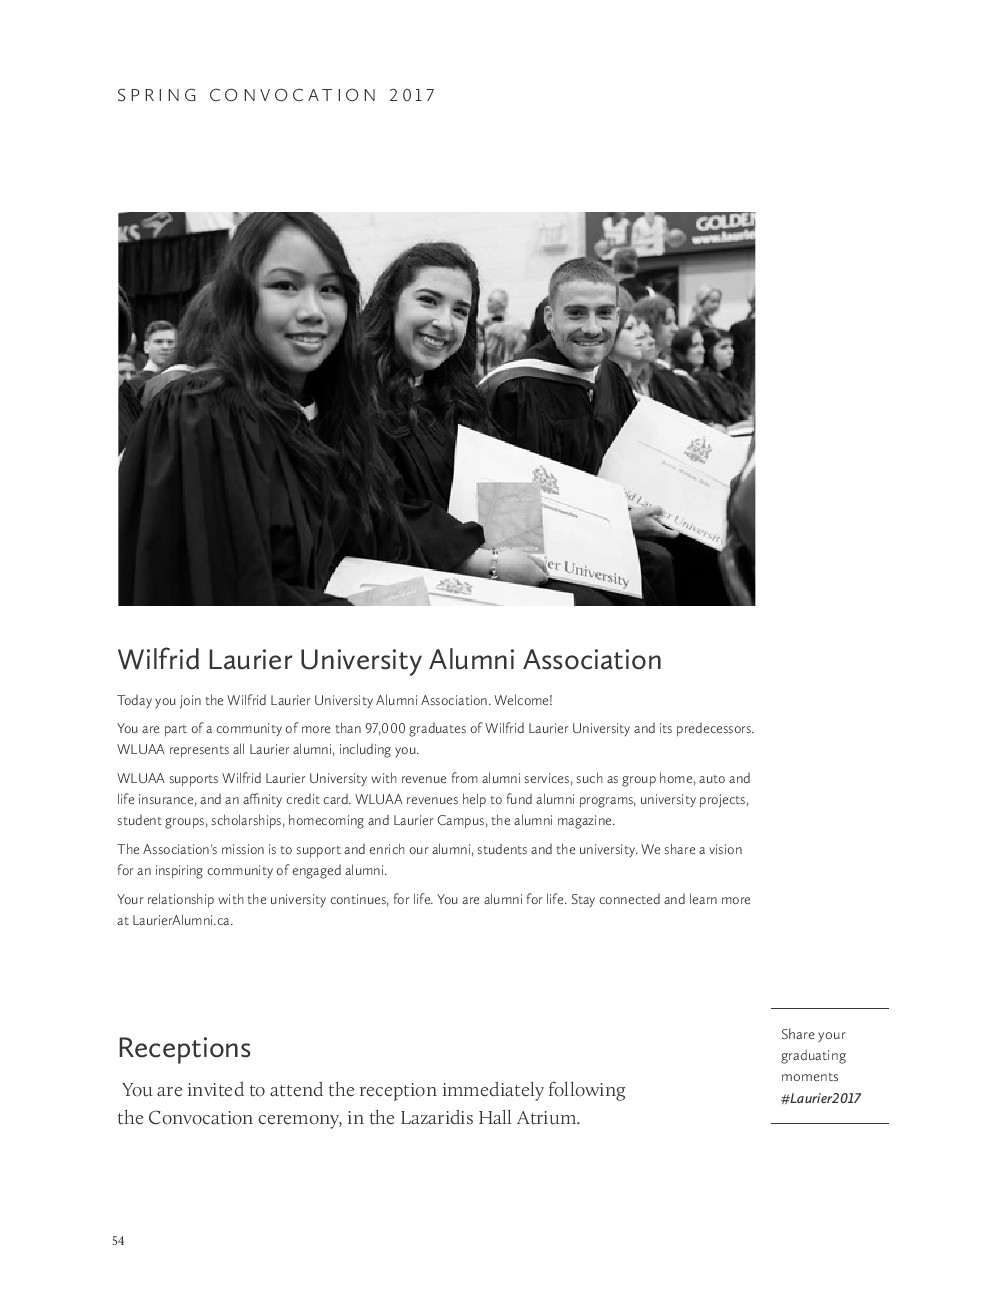 Wilfrid Laurier University Spring Convocation Program 2017